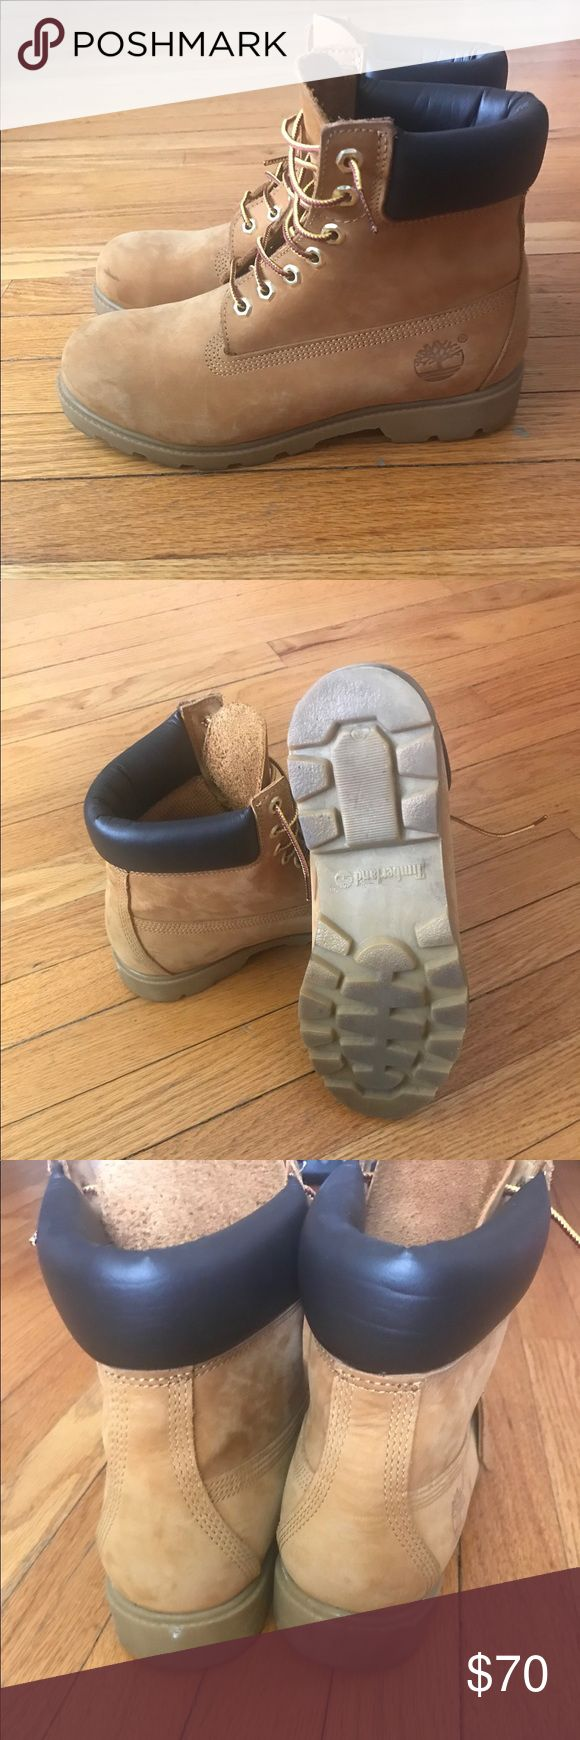 Men's Wheat Timberland boots Good condition, size 8 in men's Wheat Timberland Boots Timberland Shoes Boots